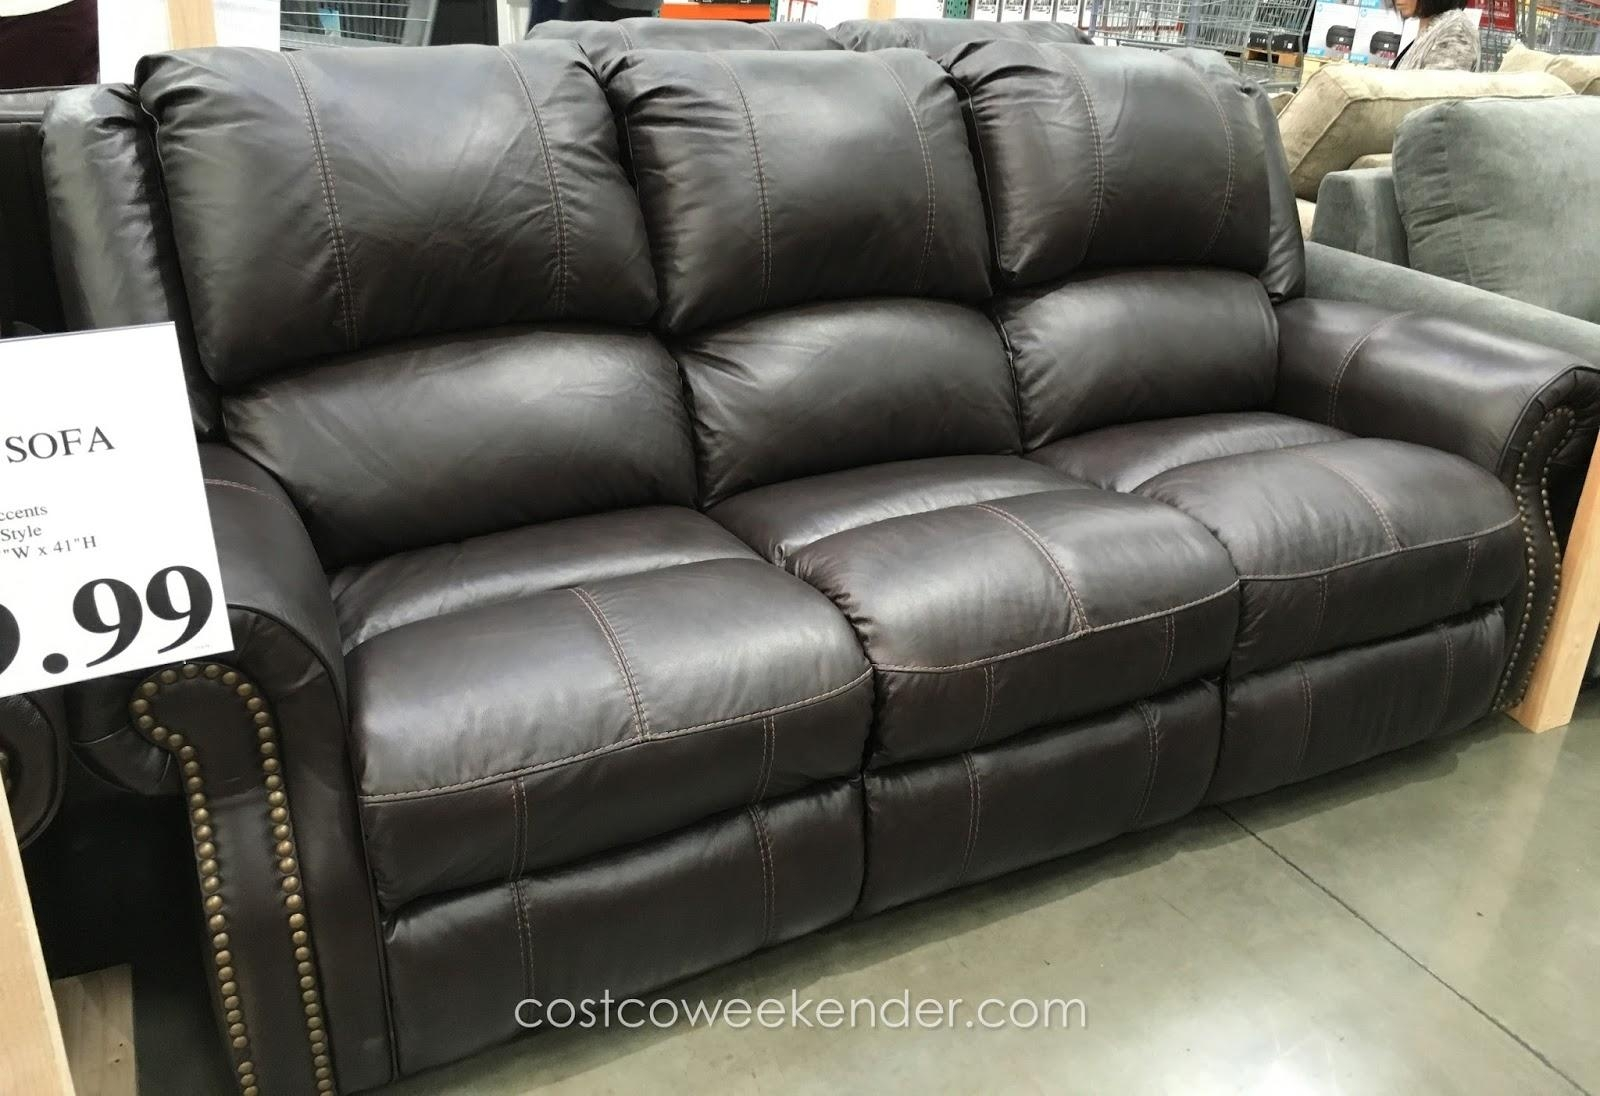 Sofas Center : Surprising Costco Leather Reclining Sofa Photos Regarding Berkline Recliner Sofas (View 1 of 20)